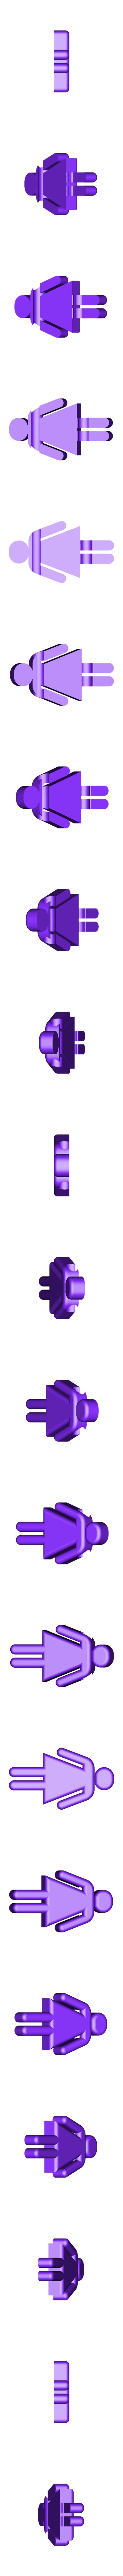 toilet_person_B.stl Download free STL file Ladder Peg Toy 3000: Codename Overkill • 3D printing object, ecoiras